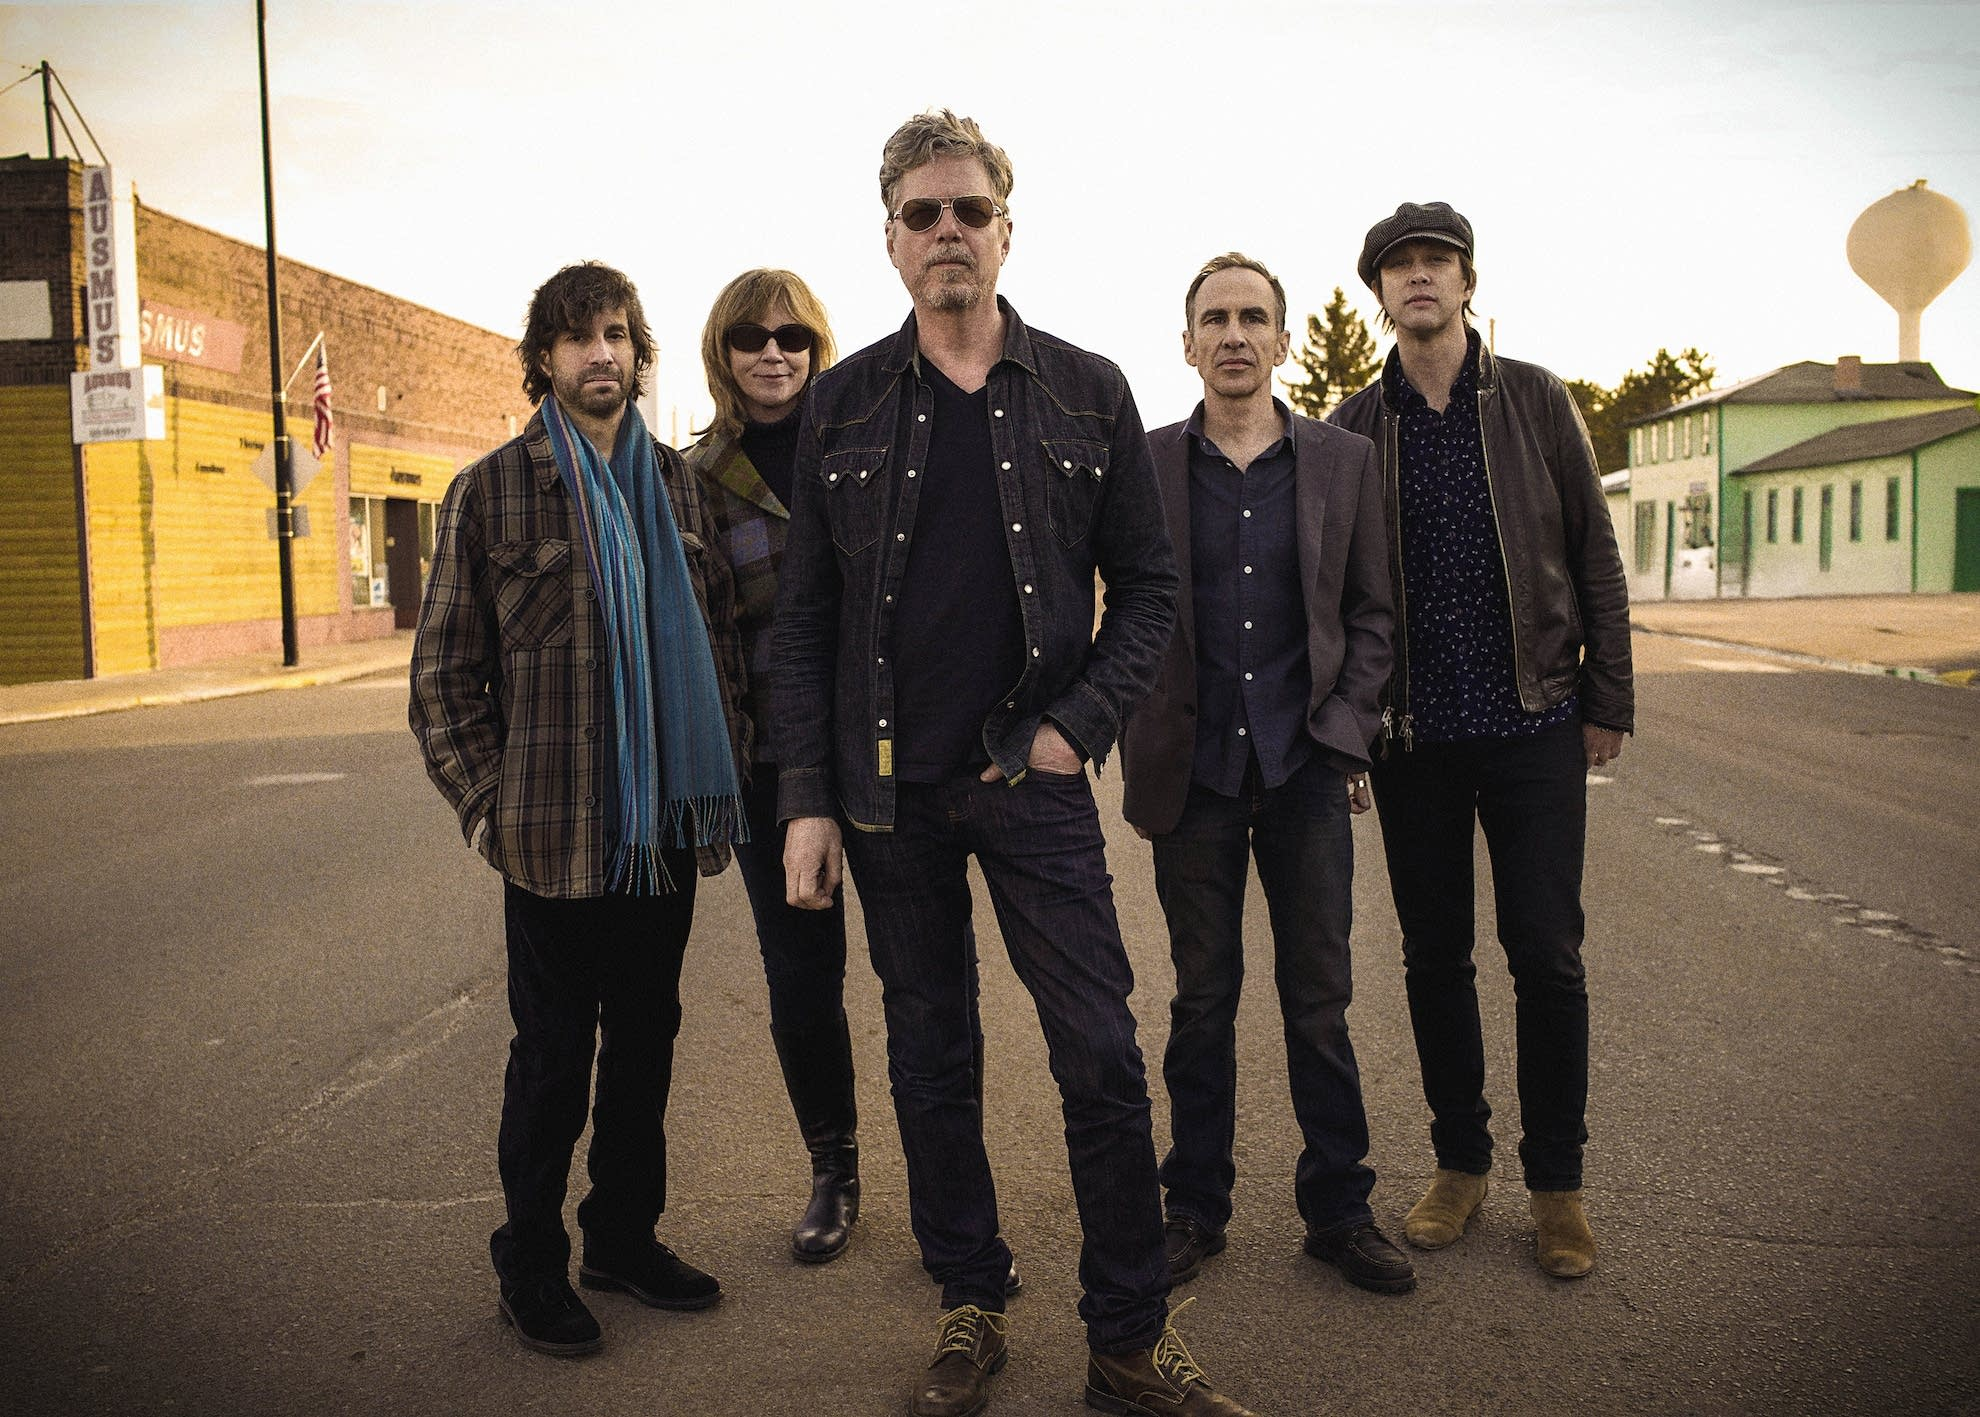 The Jayhawks 2018 press photo